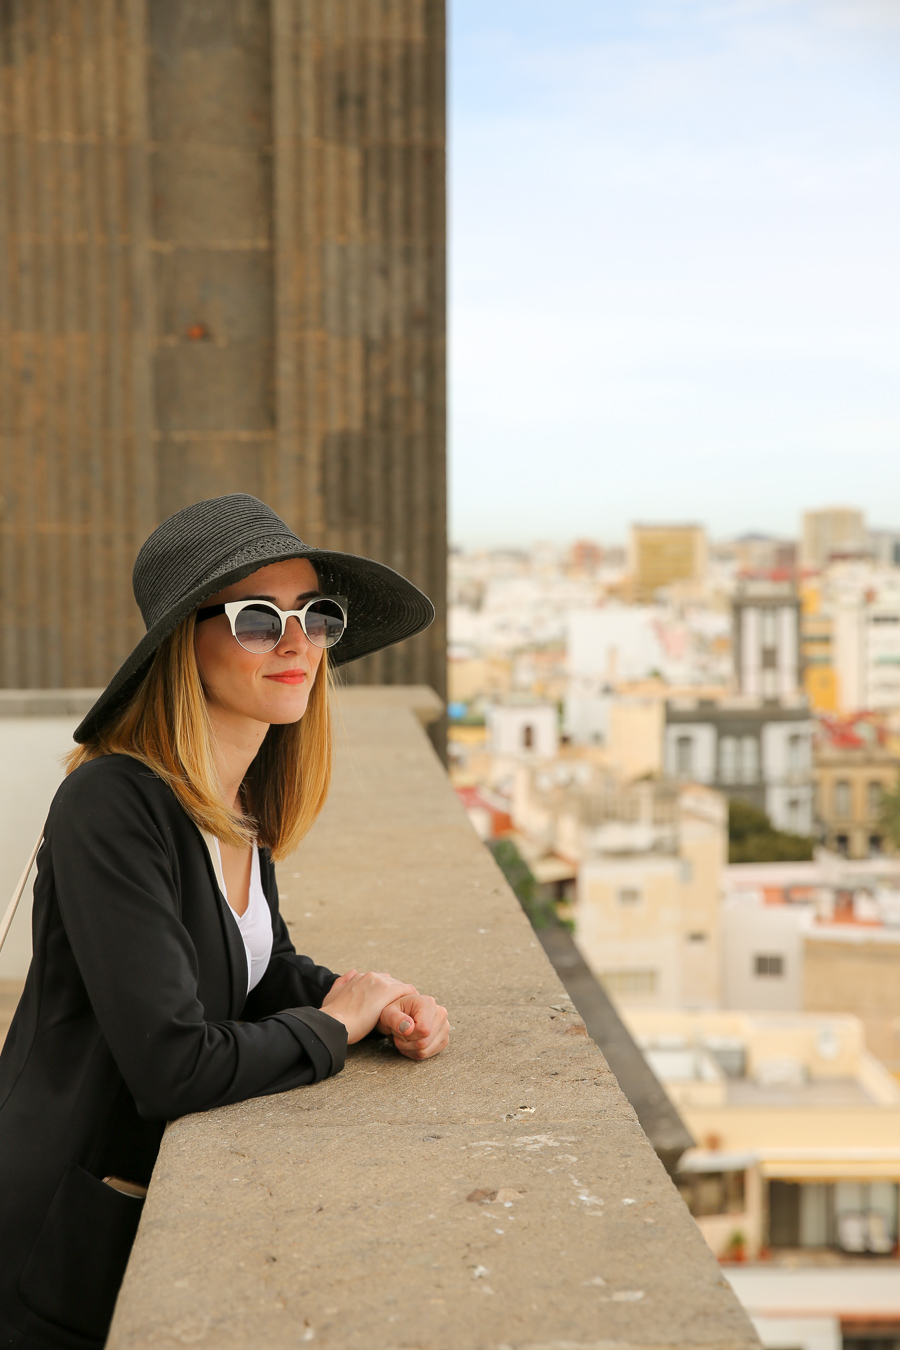 Alicia Mara, Levitate Style, menswear, Travel, Las Palmas, Gran Canaria, what to wear